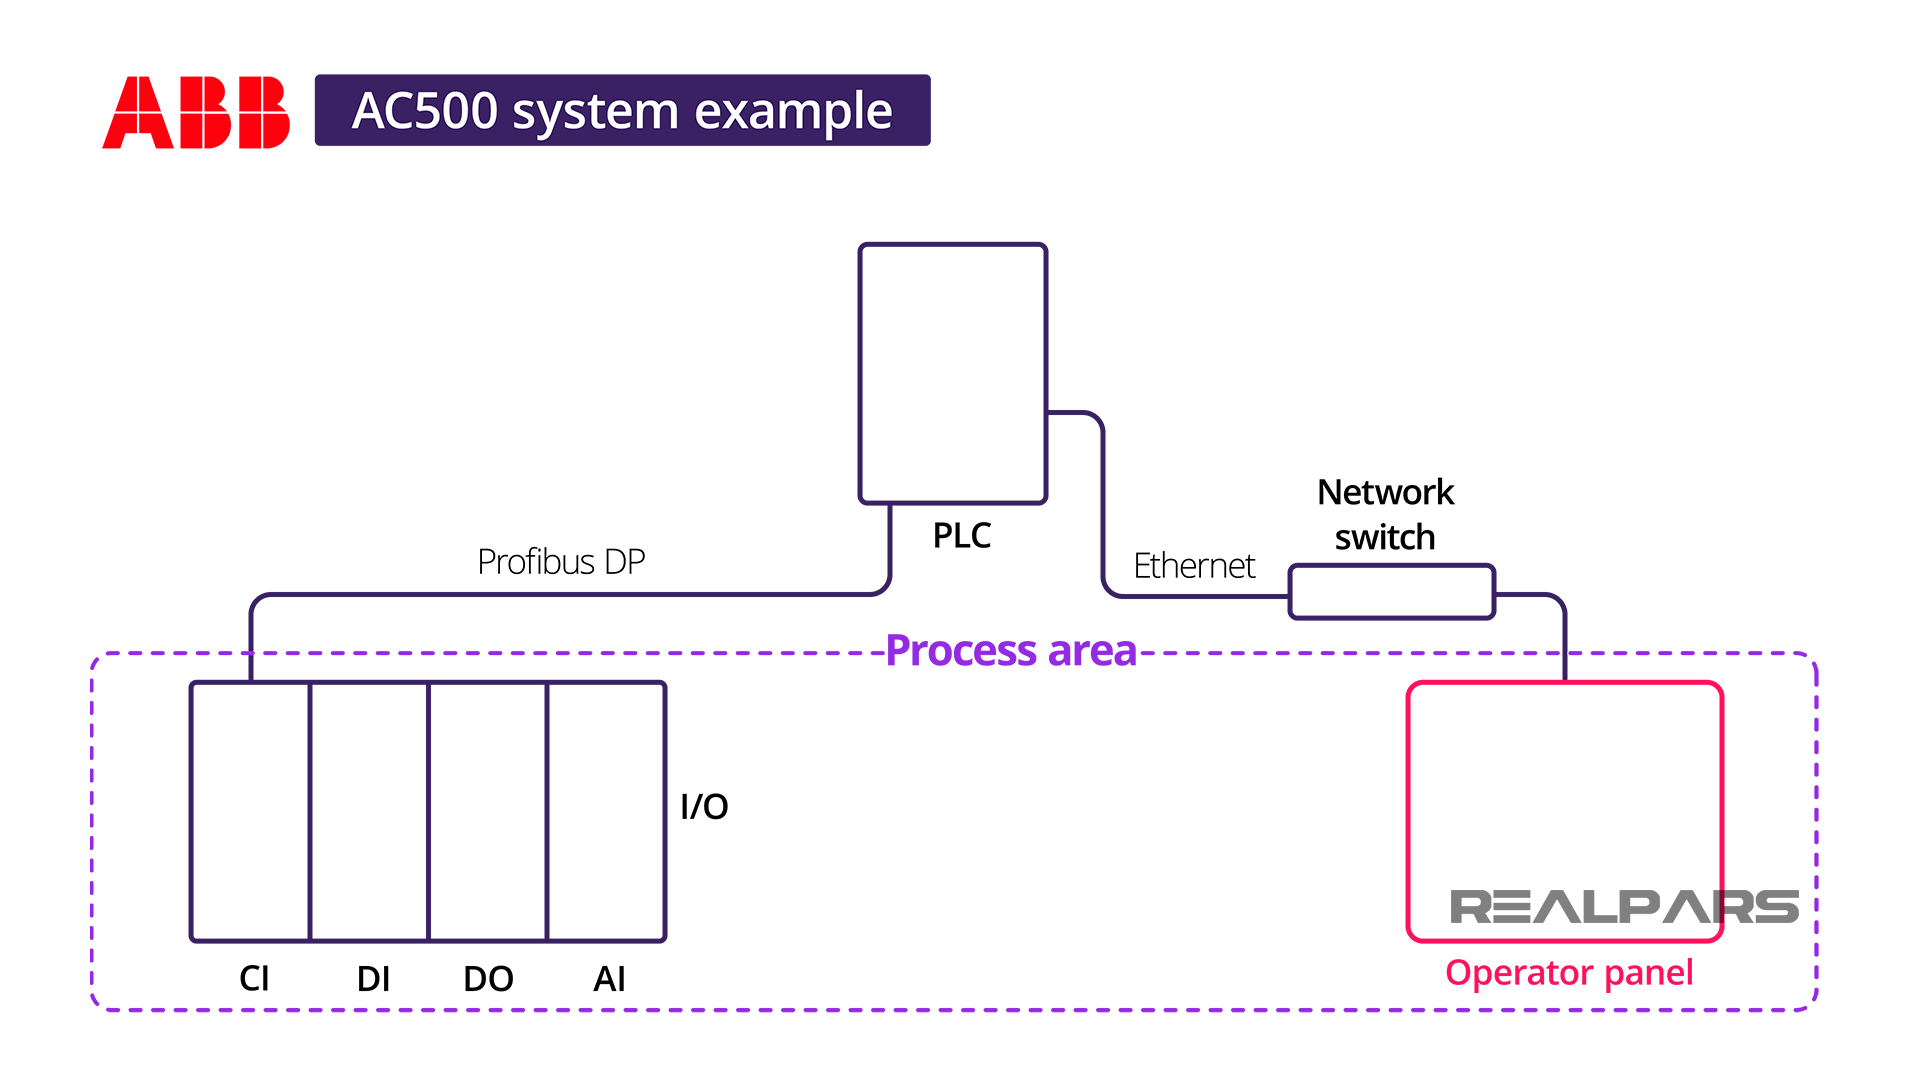 Configuring A Small ABB AC500 PLC system